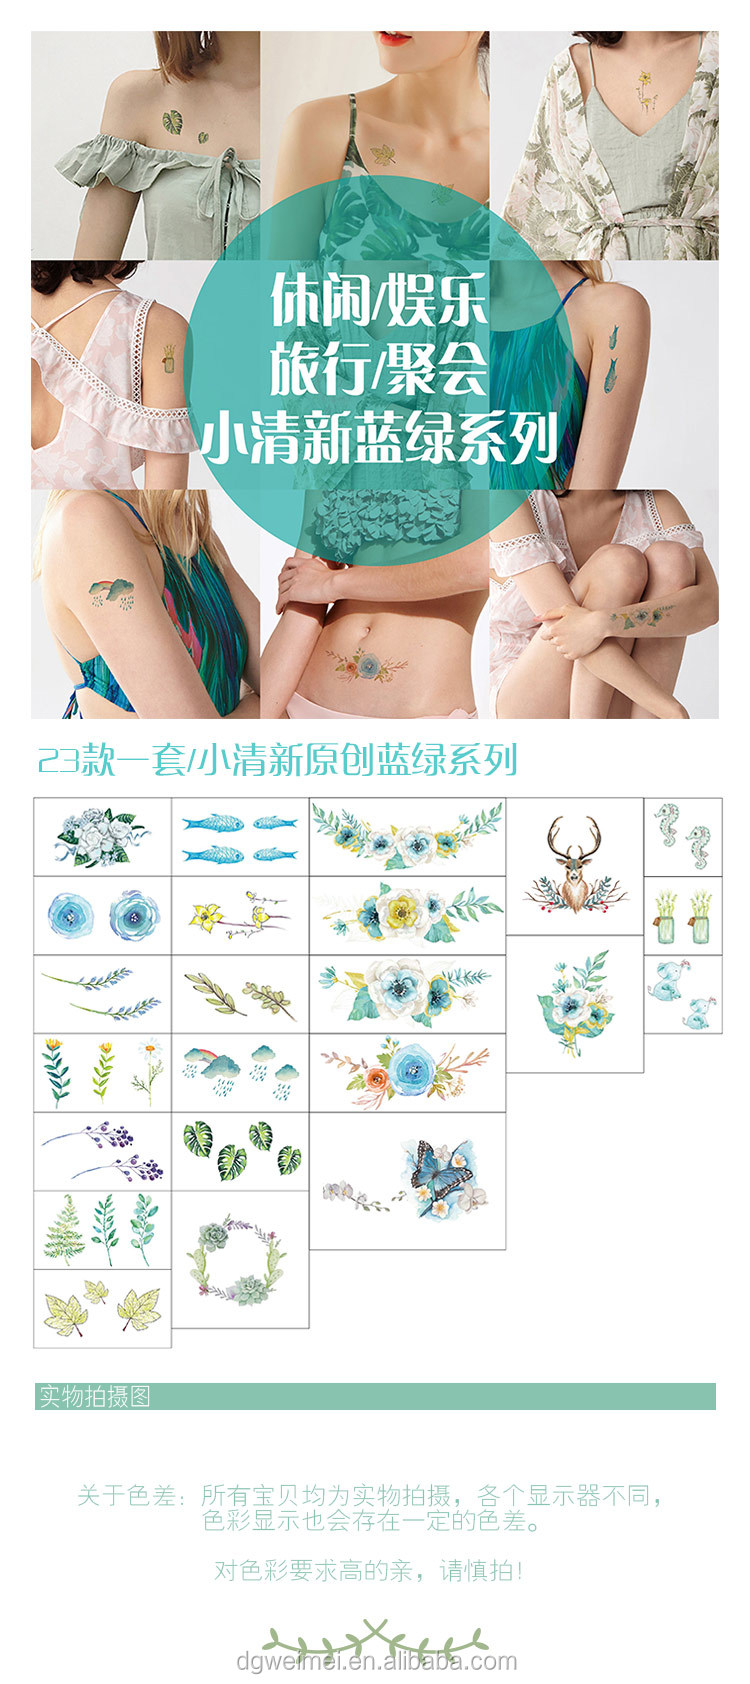 Sexy Floral Body Temporary Tattoos For Back